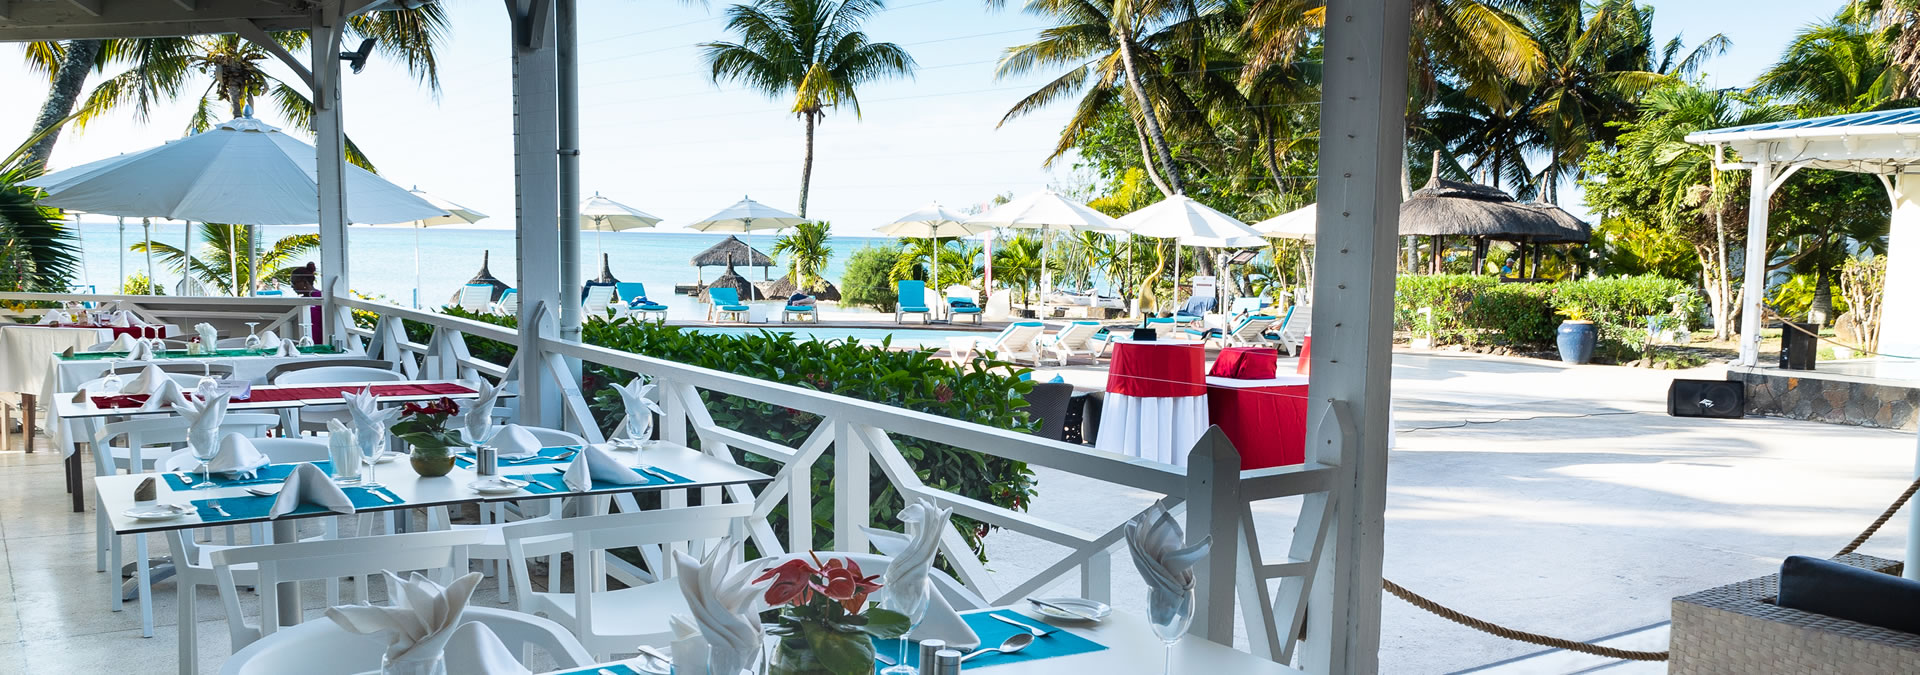 Multi cuisine restaurants in Mont Choisy beach